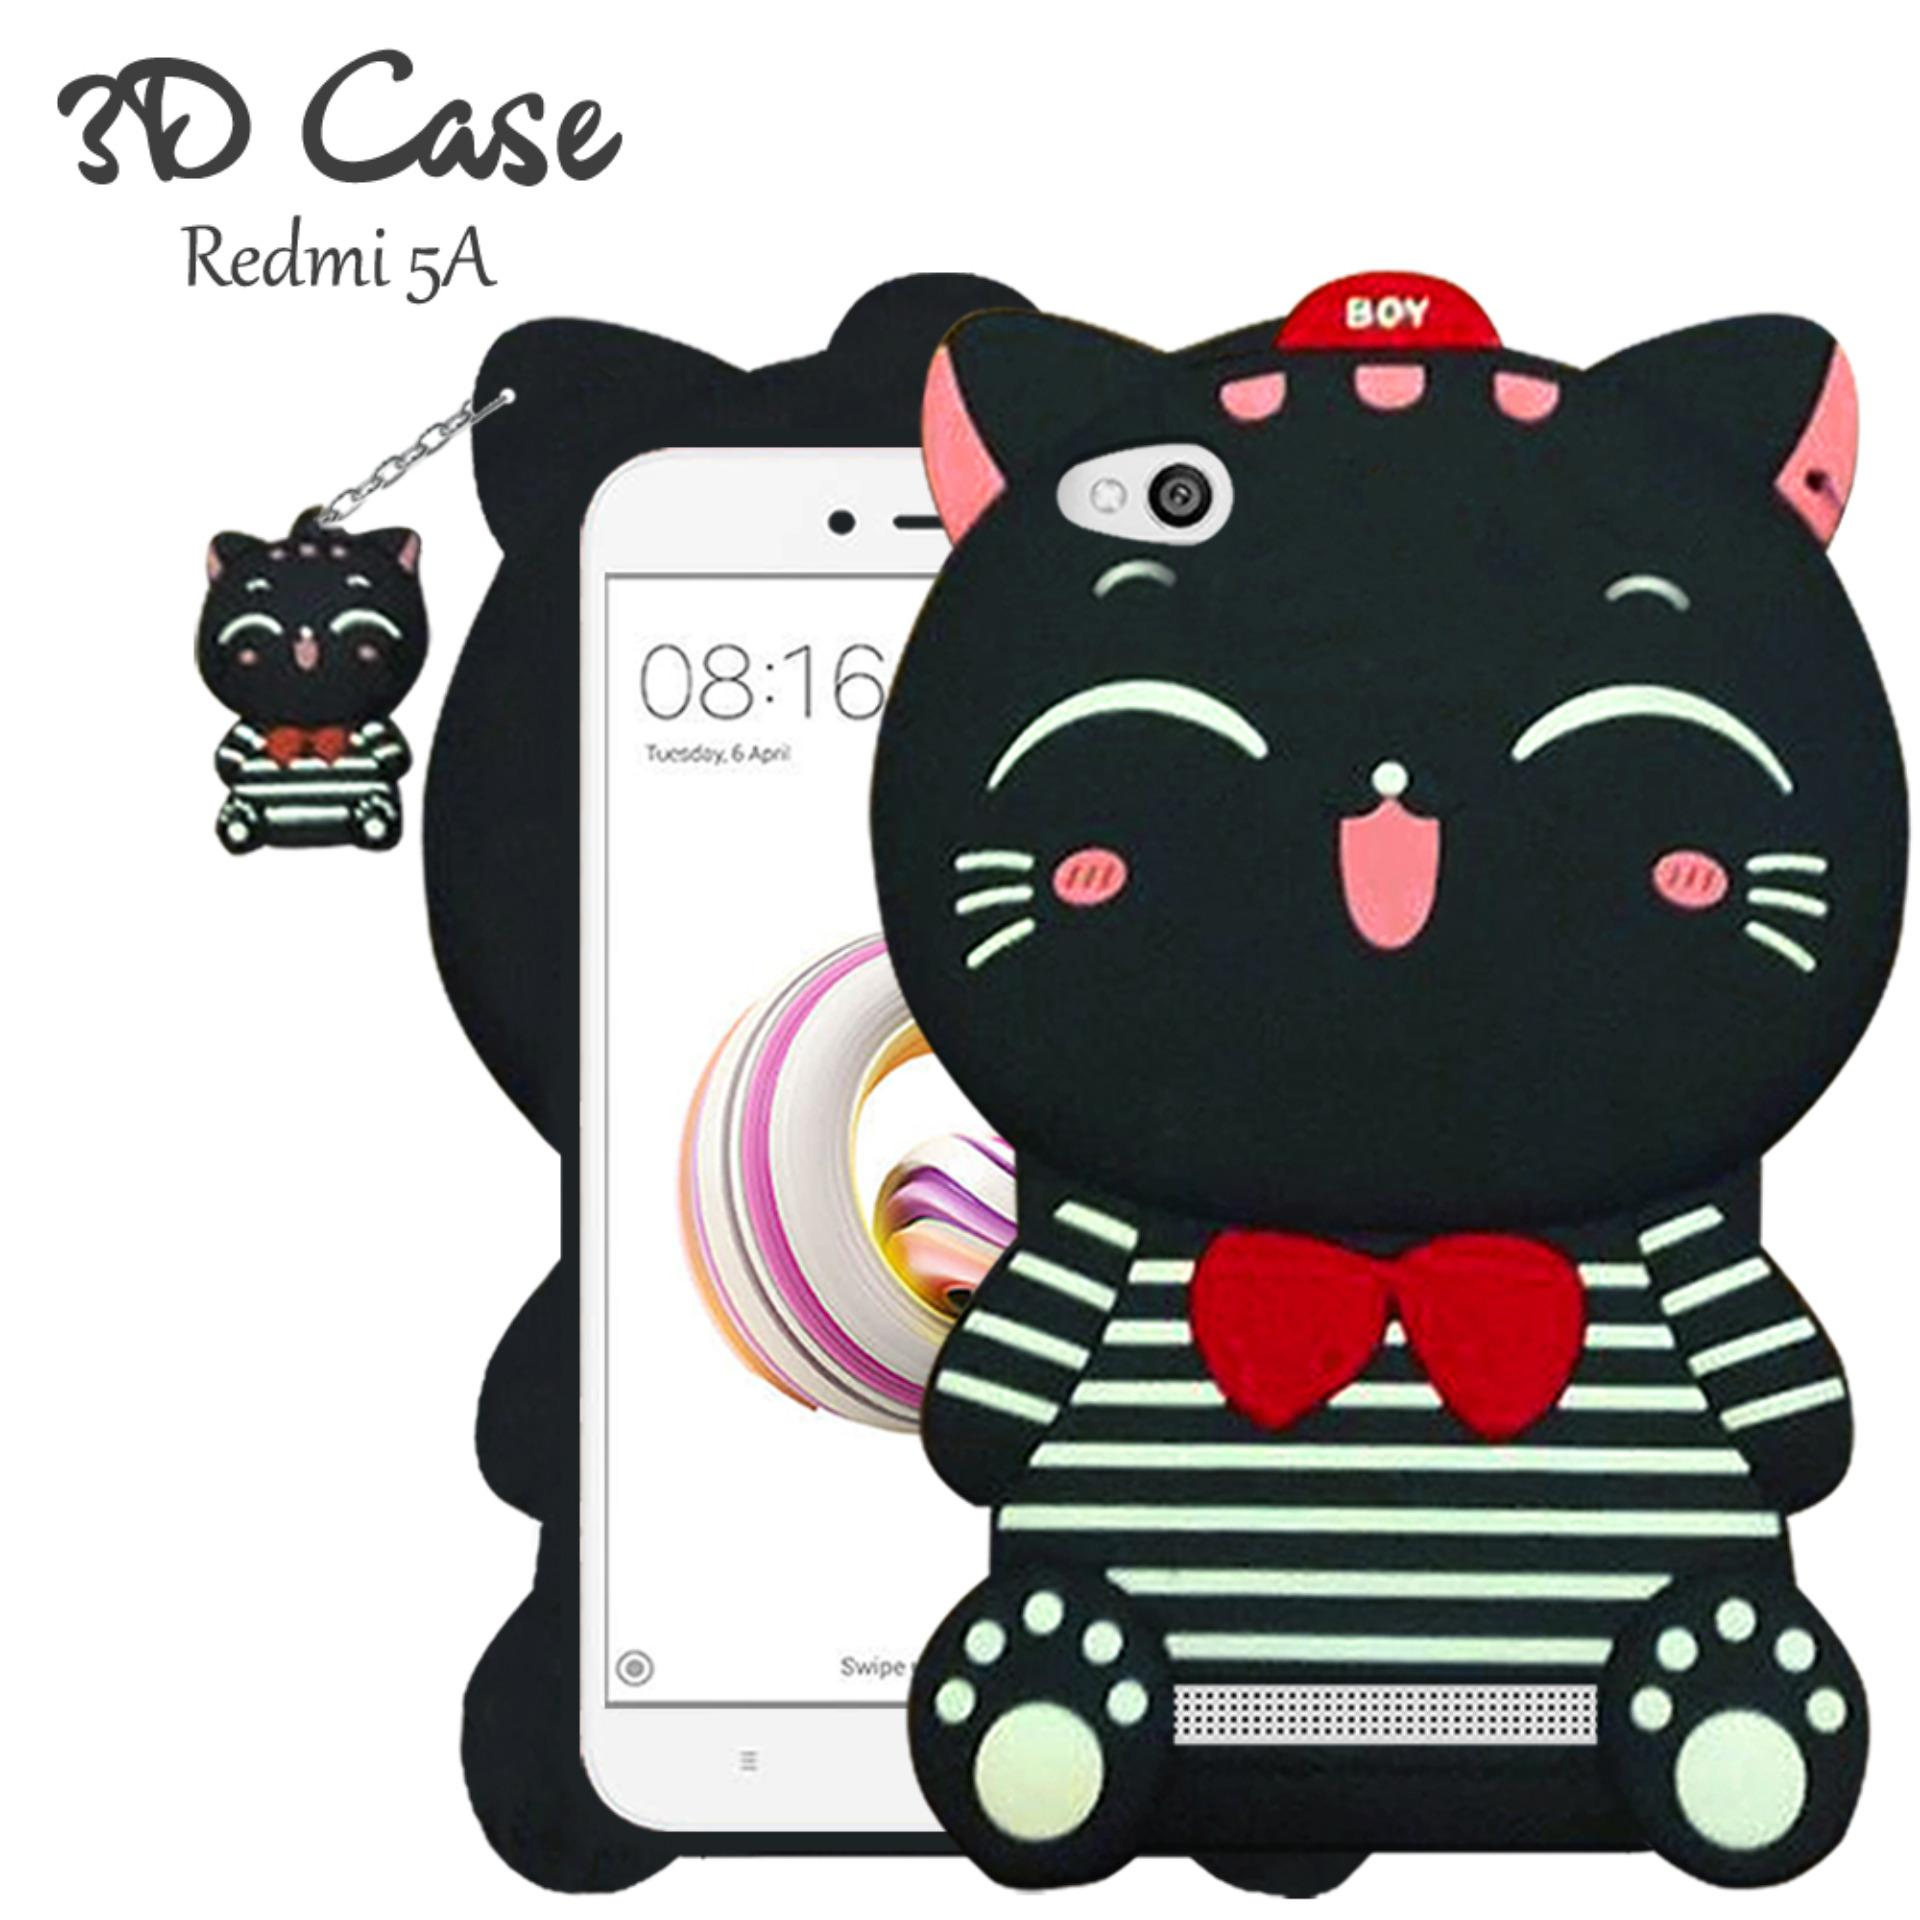 3D Case Xiaomi Redmi 5A Softcase 4D Karakter Boneka Hello Kitty Doraemon Lucu Character Cartoon